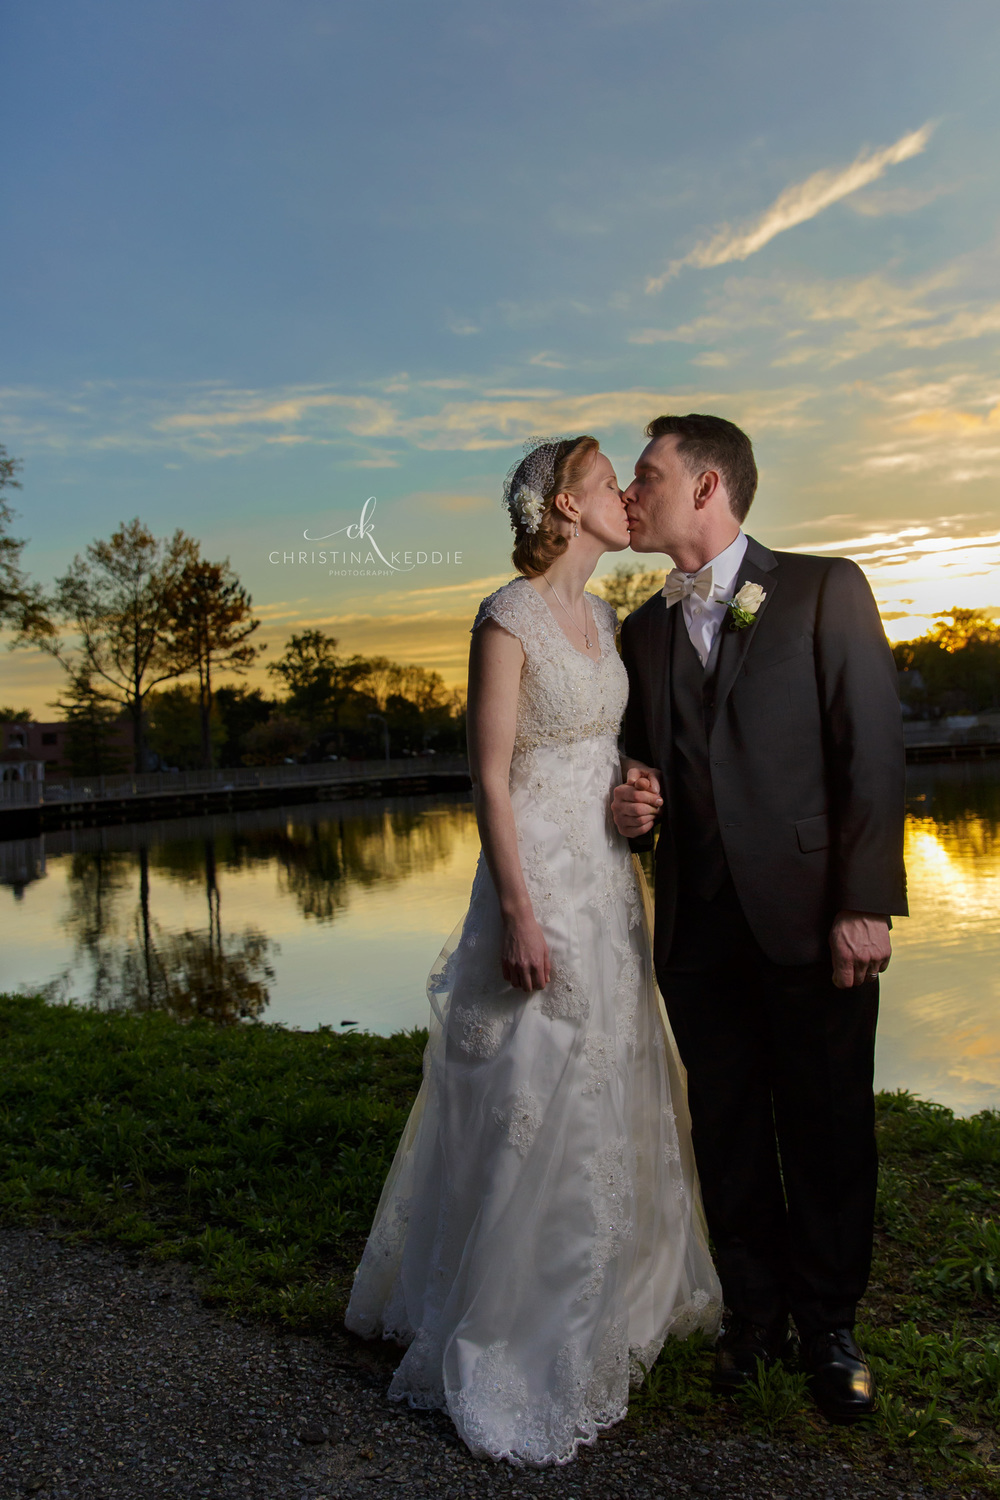 Sunset formal portrait of bride and groom | Christina Keddie Photography | Princeton NJ wedding photographer